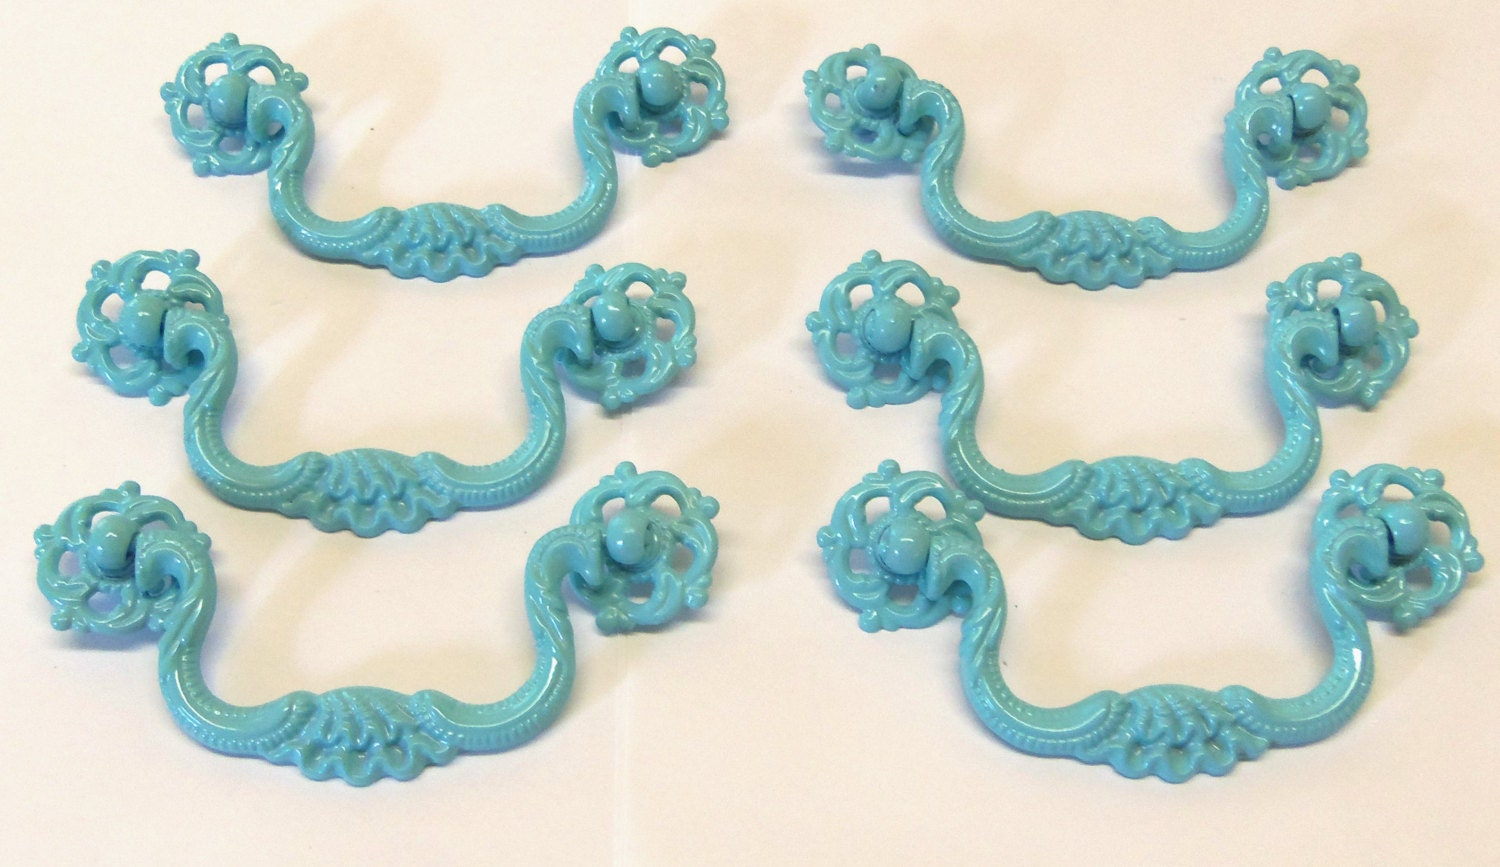 drawer pulls 6 ornate shabby style aqua turquoise ocean blue. Black Bedroom Furniture Sets. Home Design Ideas